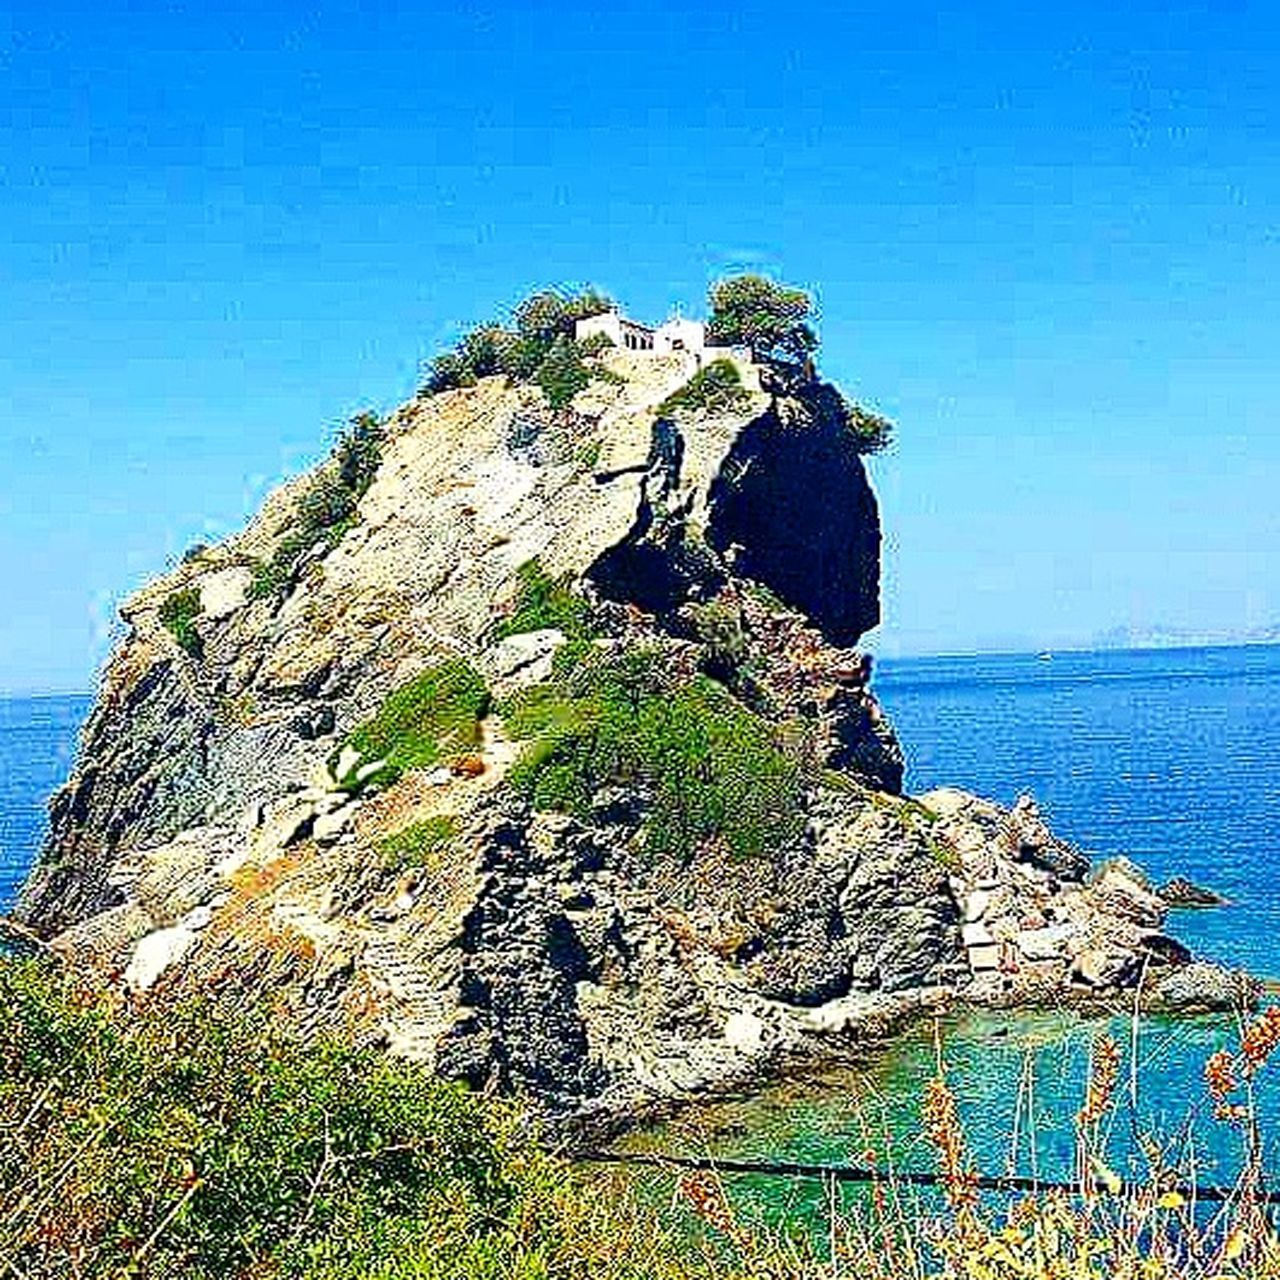 sea, rock - object, scenics, nature, horizon over water, tranquility, water, cliff, outdoors, beauty in nature, beach, day, blue, no people, sky, clear sky